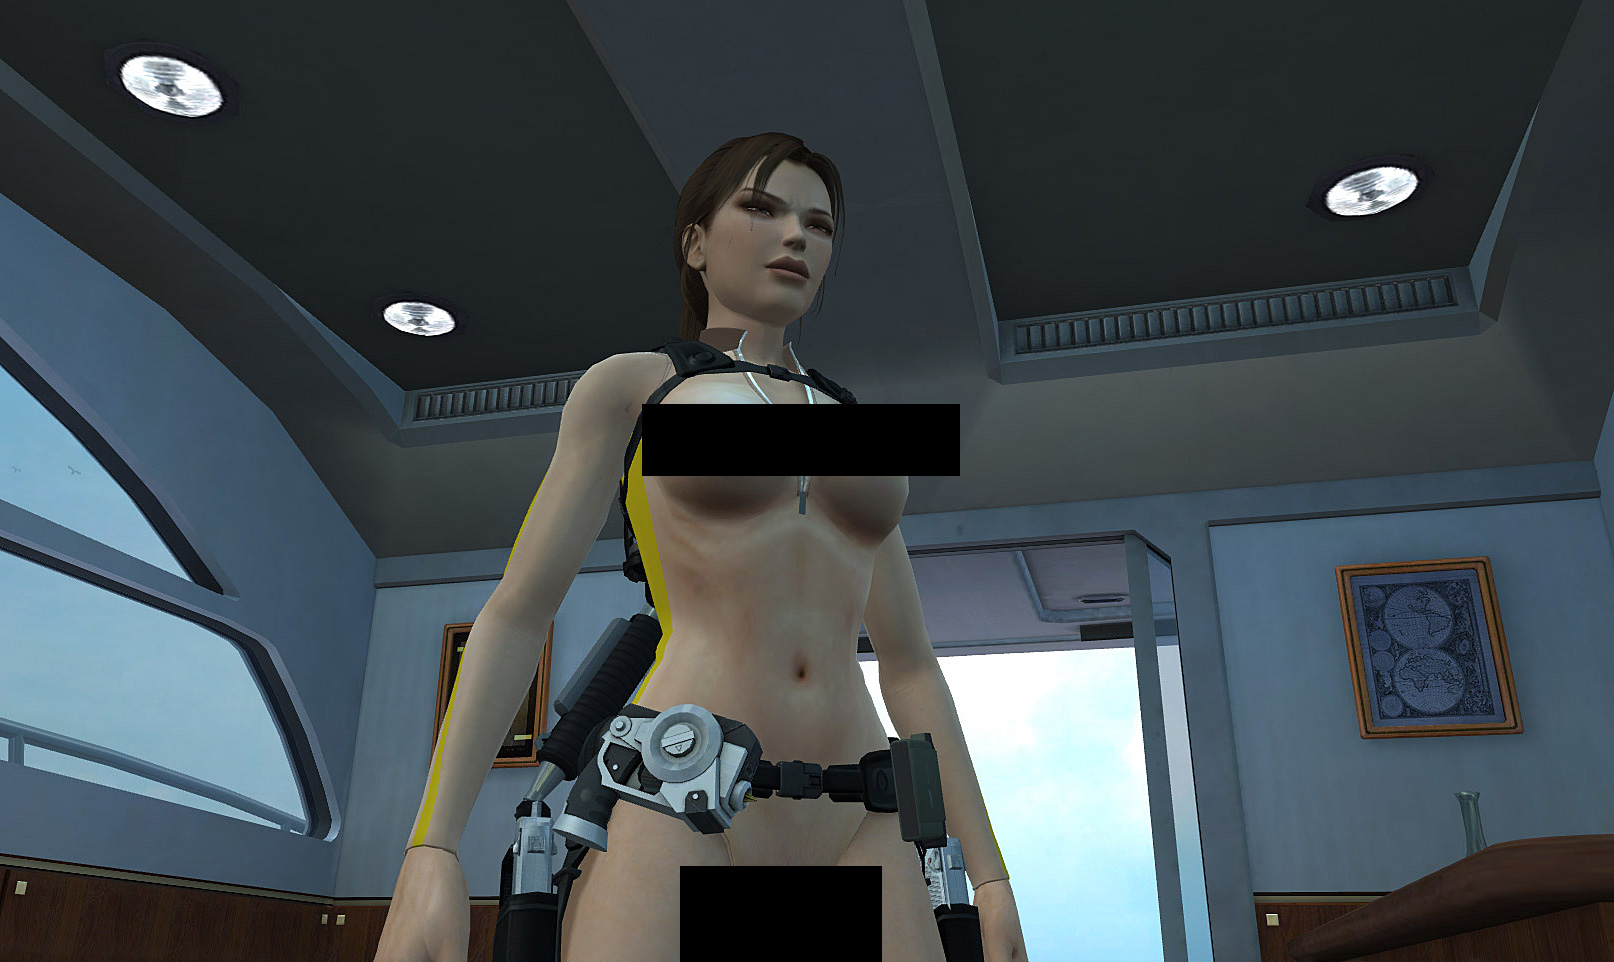 Lara croft boobs nude skin sexy videos